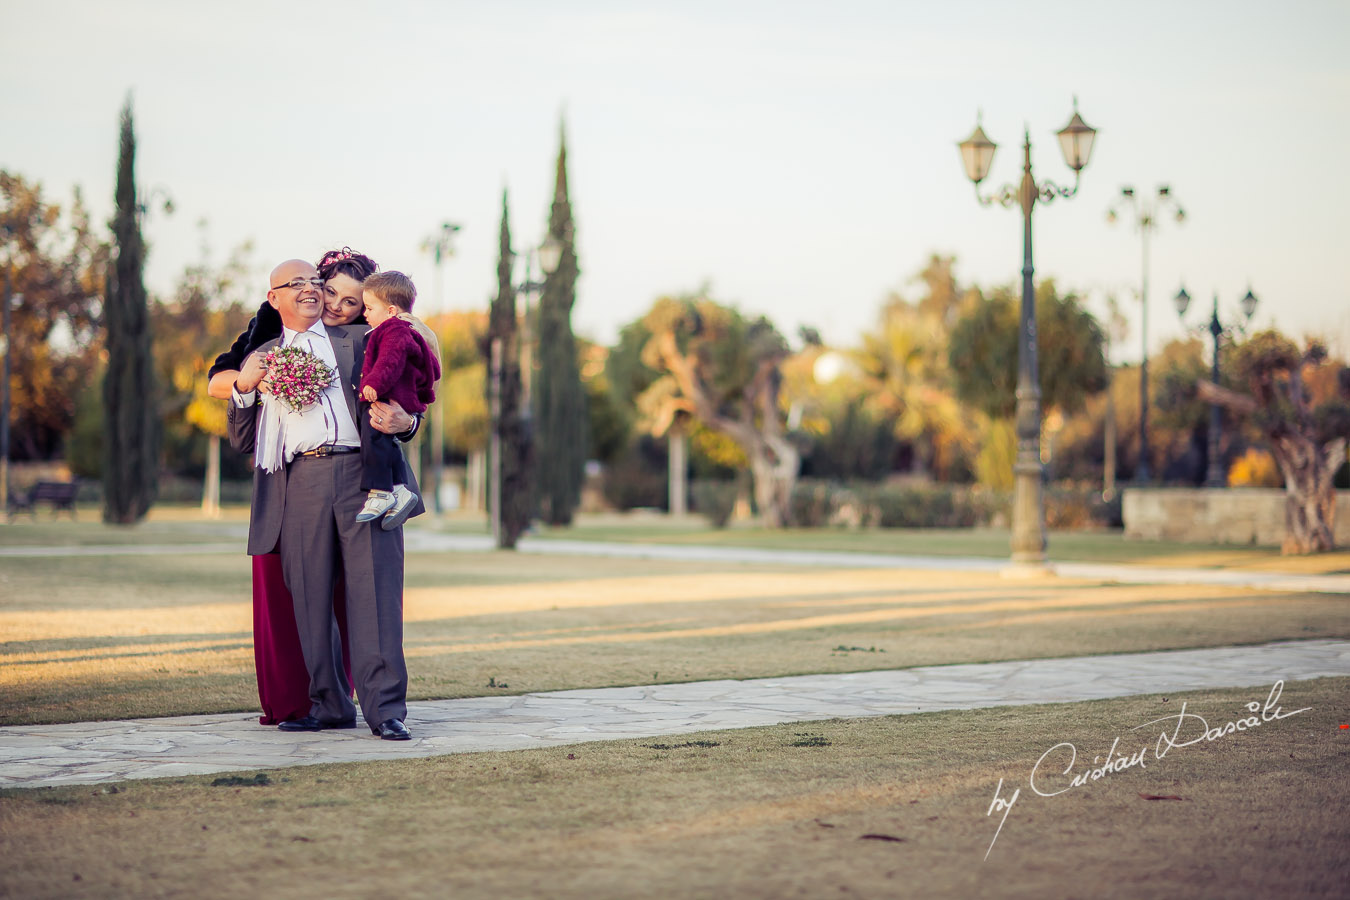 Beautiful Wedding in Larnaca - Vassos & Laura. Photographer: Cristian Dascalu